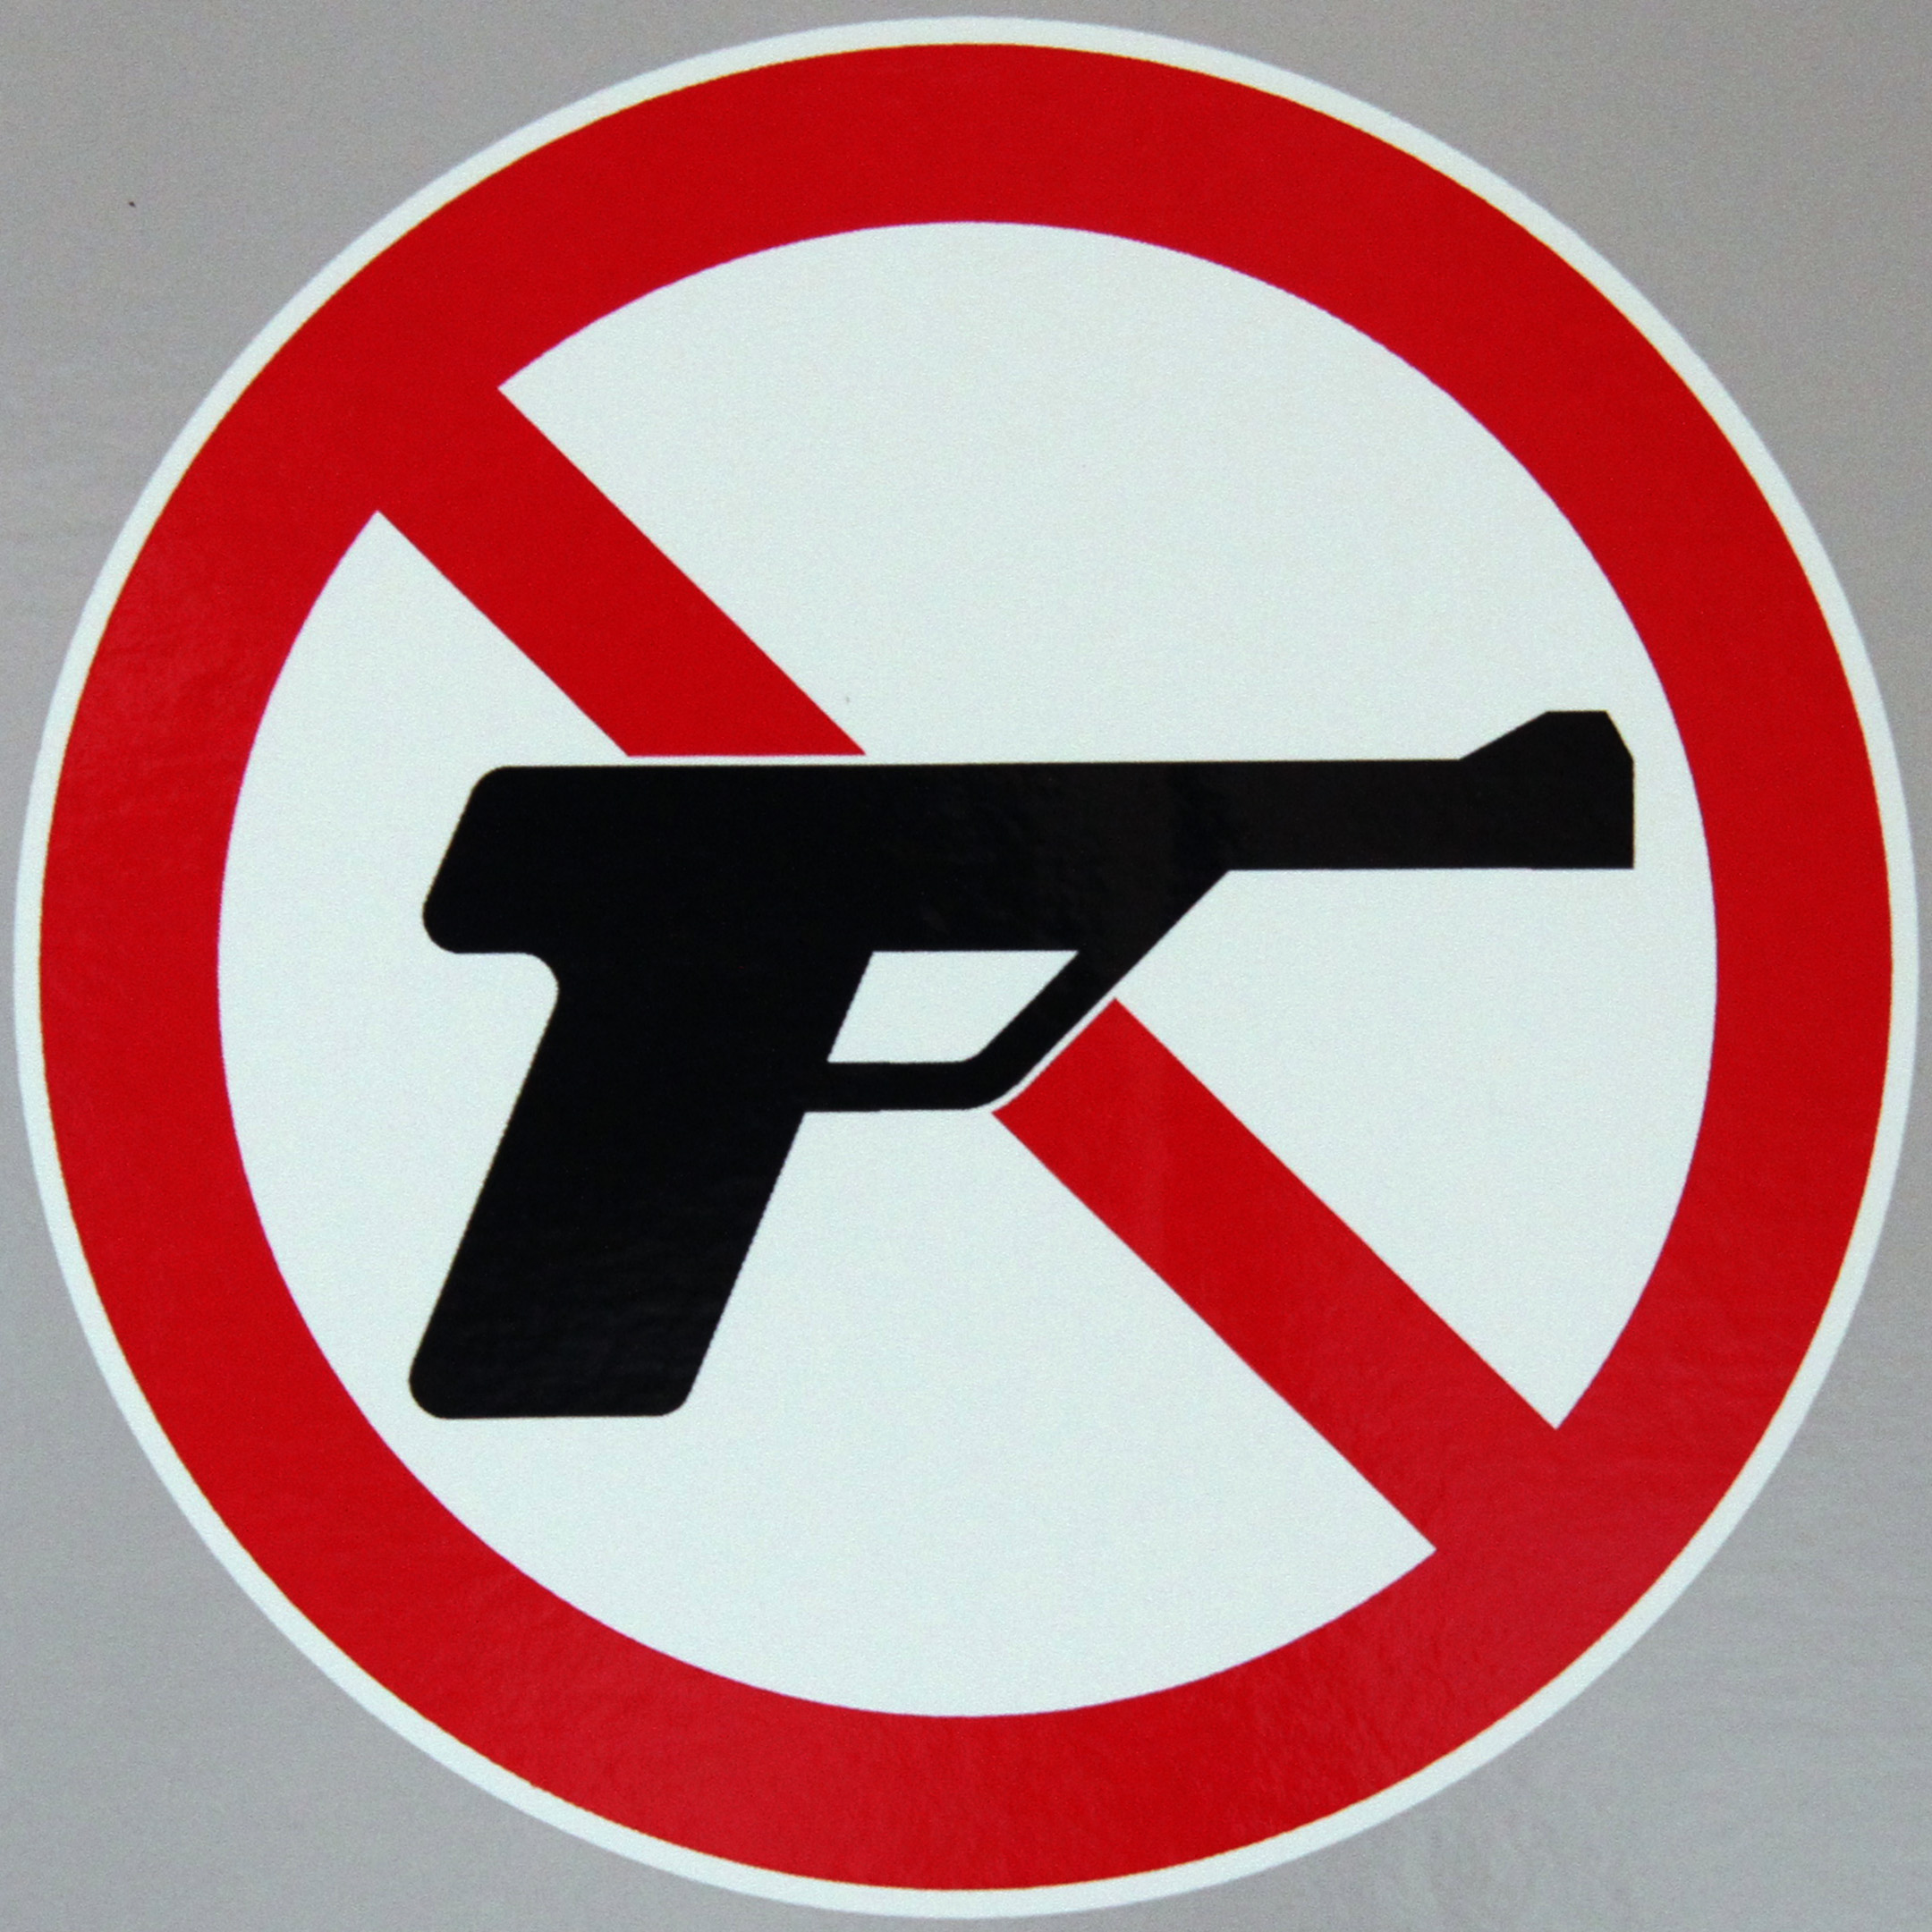 A 'no guns' sign